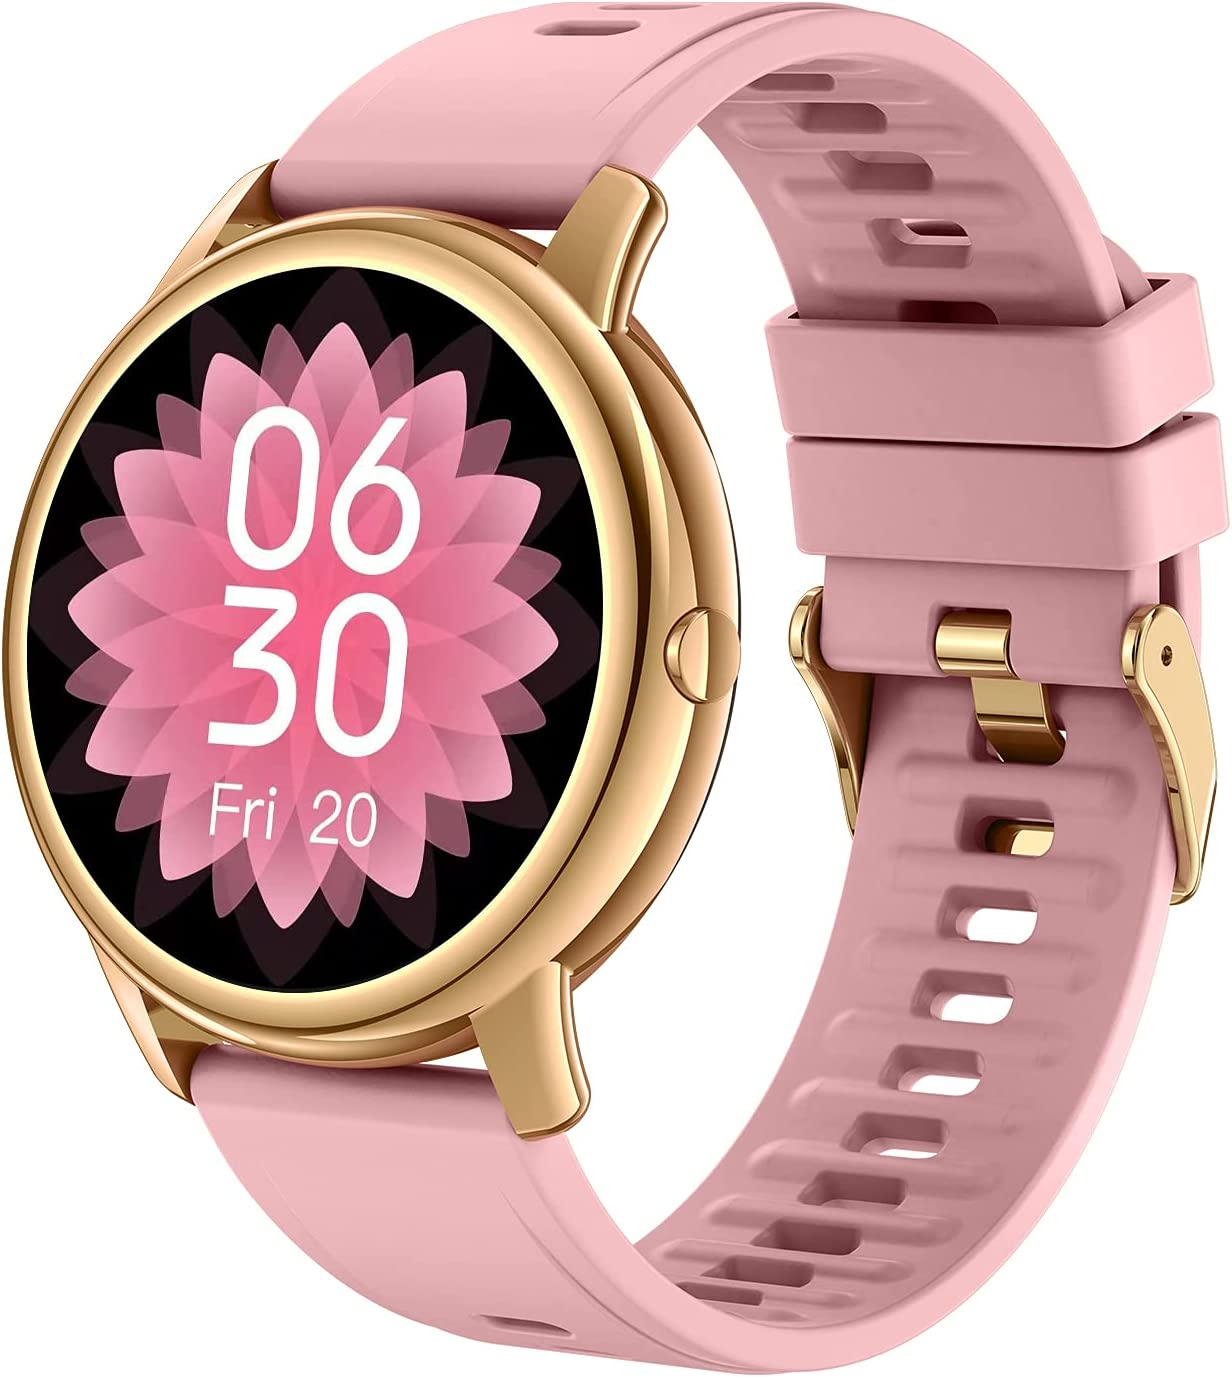 IDEALROYAL Smart Watch Fitness Free shipping anywhere in the nation Tracker I Heart Miami Mall Monitor with Rate